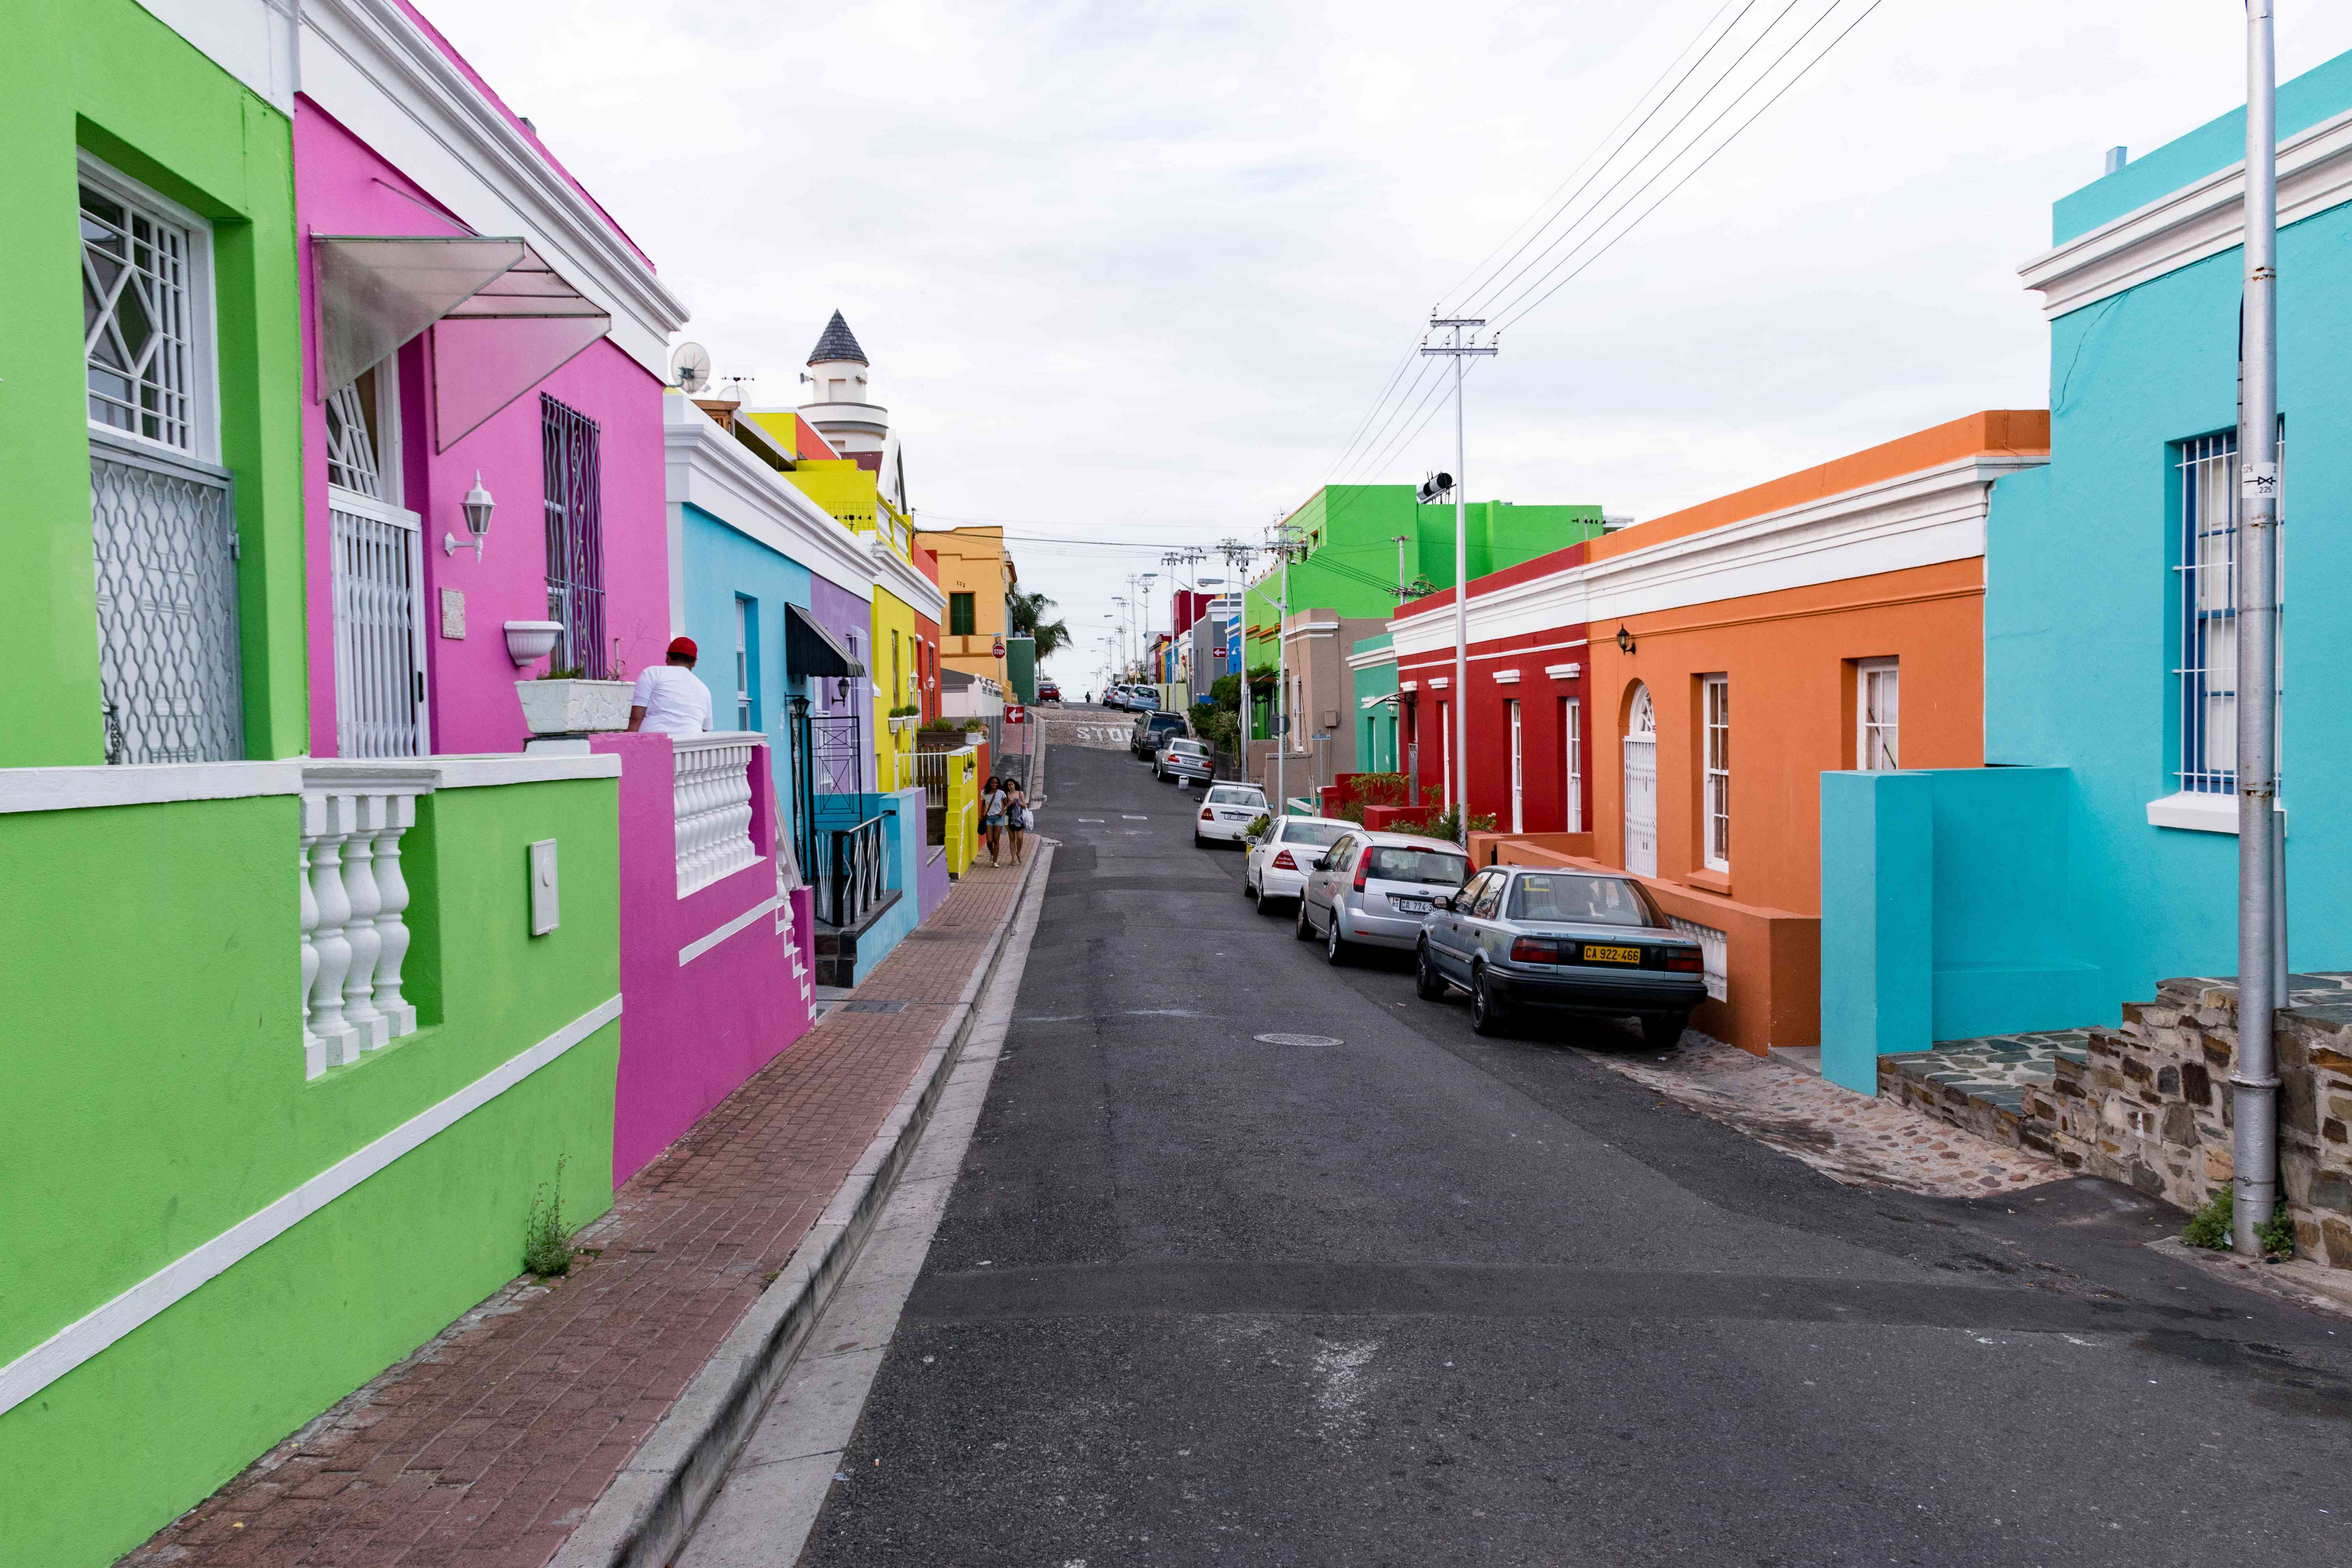 A long row of colorful houses